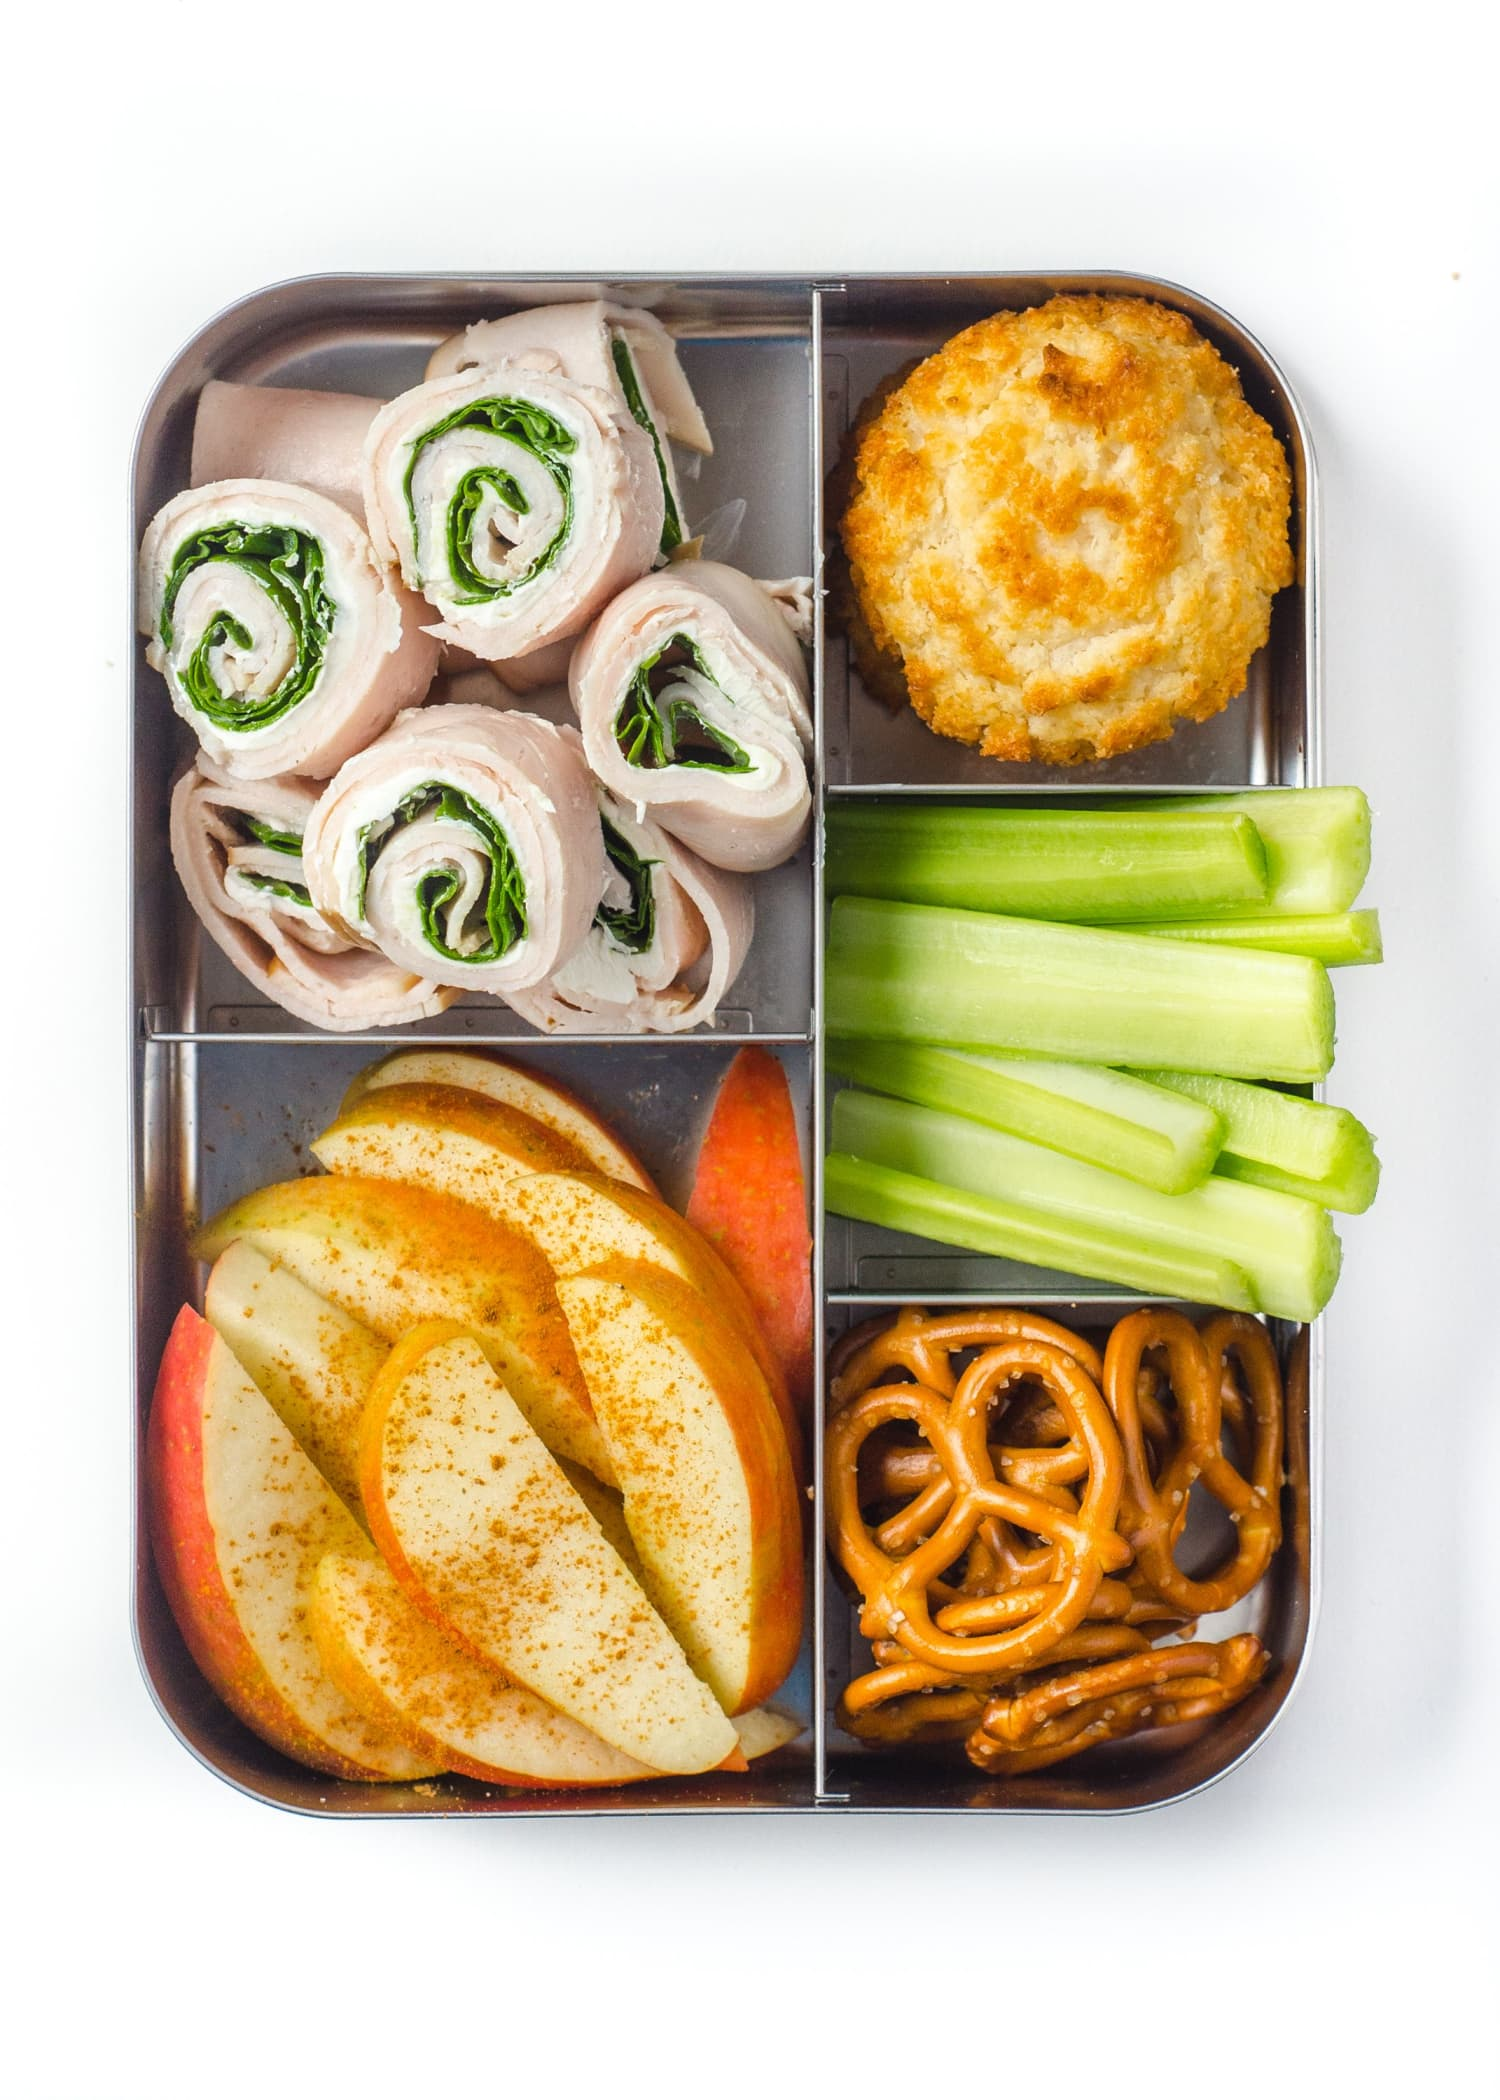 What's Your Best Advice for Packing School Lunches?